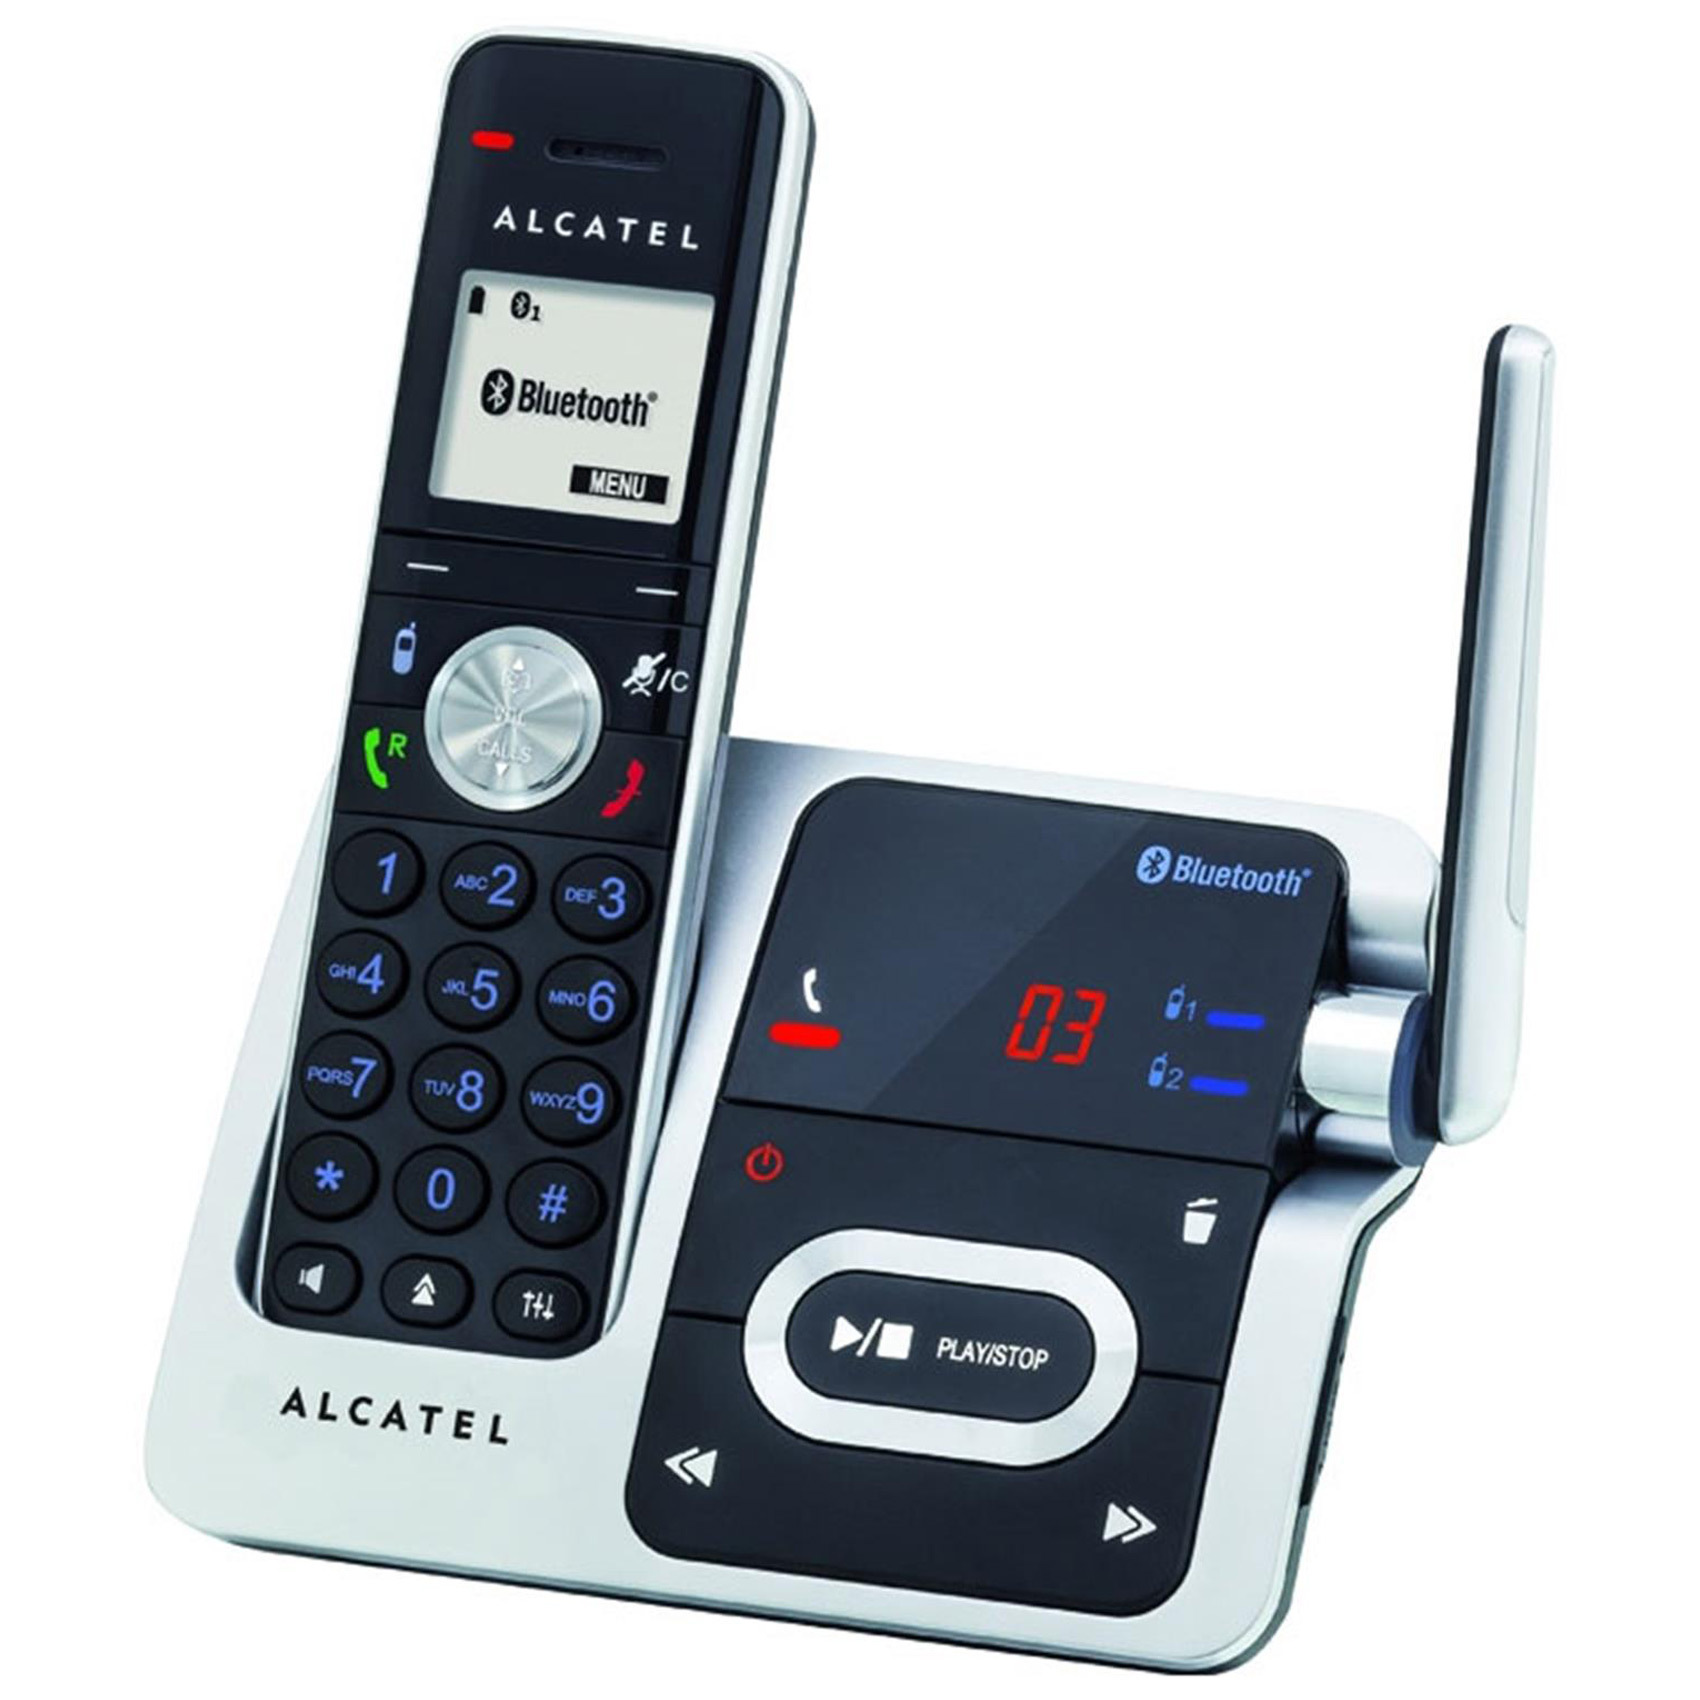 ALCATEL XP1050 B/T DECT PHONE